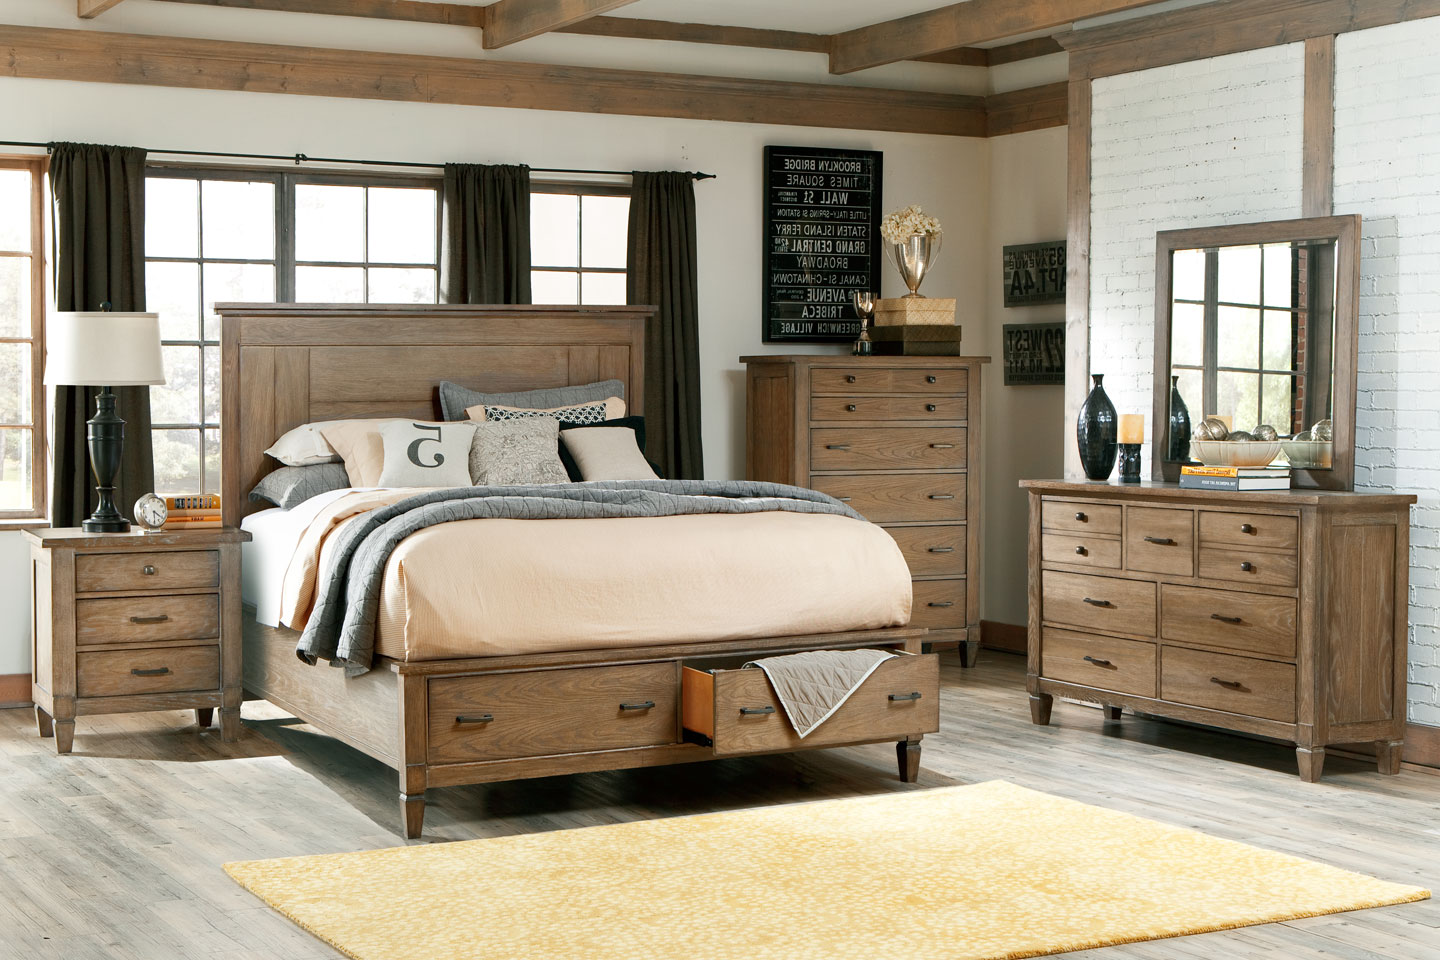 Gavin wood bedroom furniture collection wood bedroom for House to home furniture